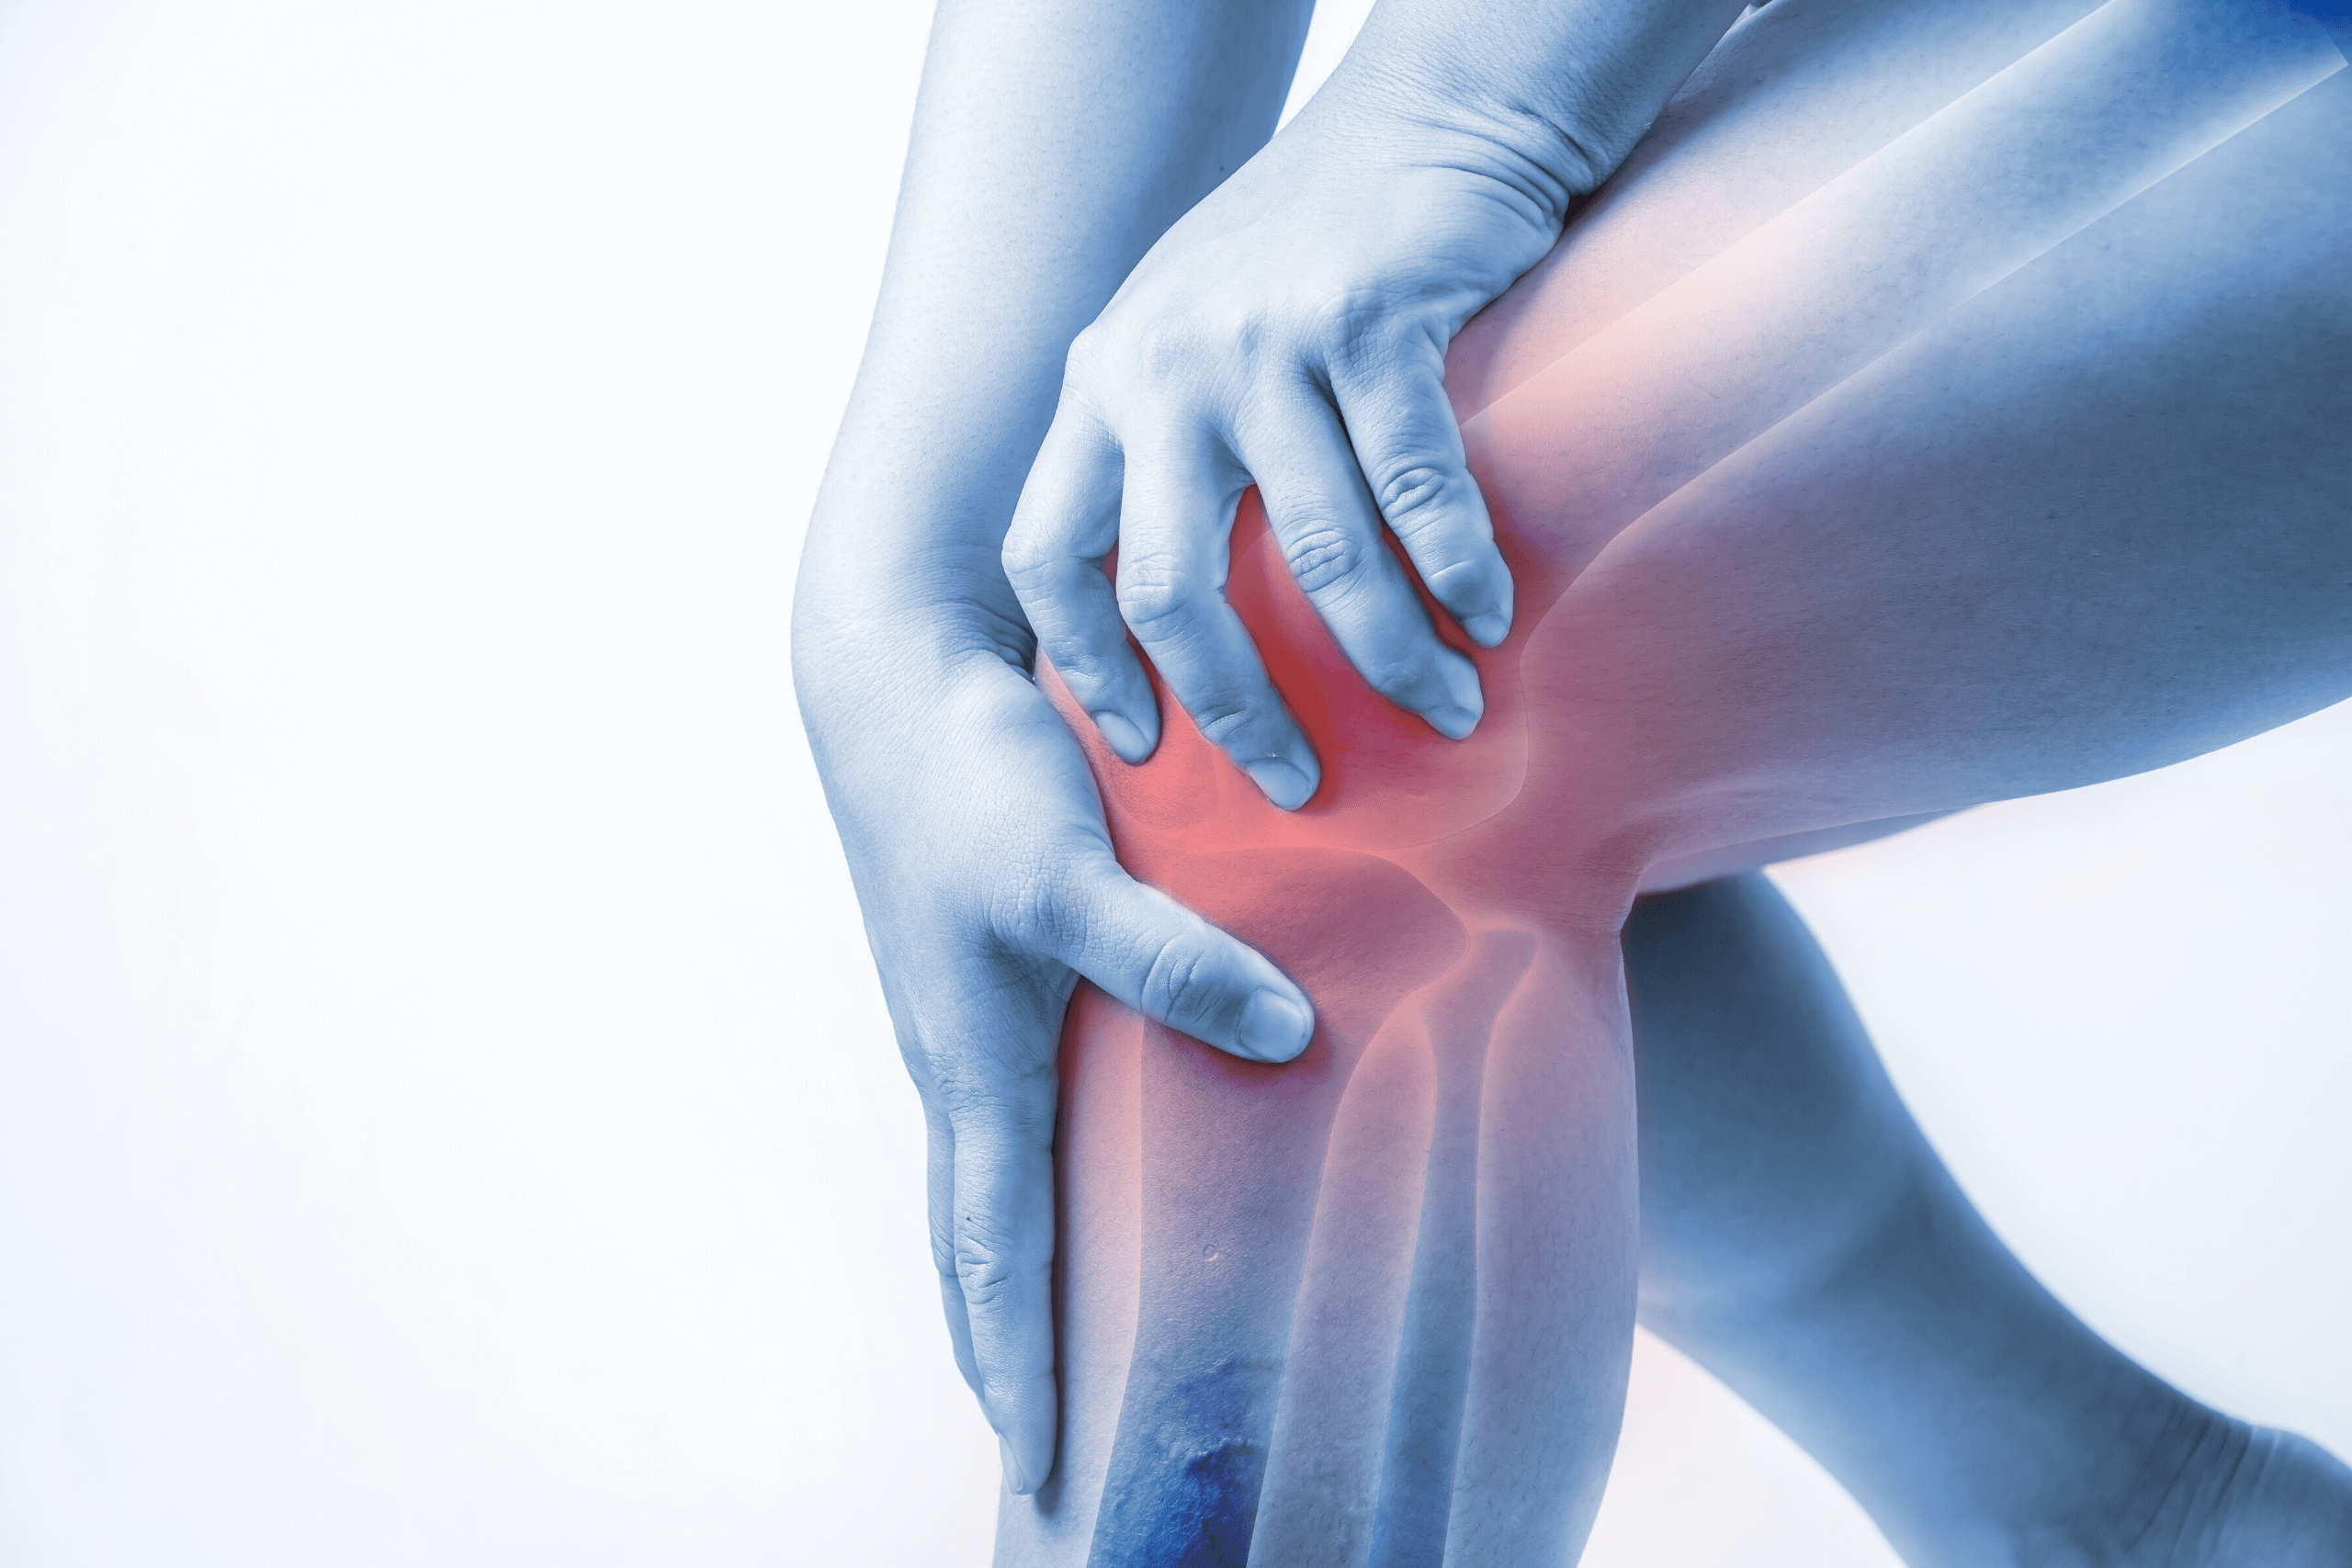 Rendering of Joint Pain in the Knee